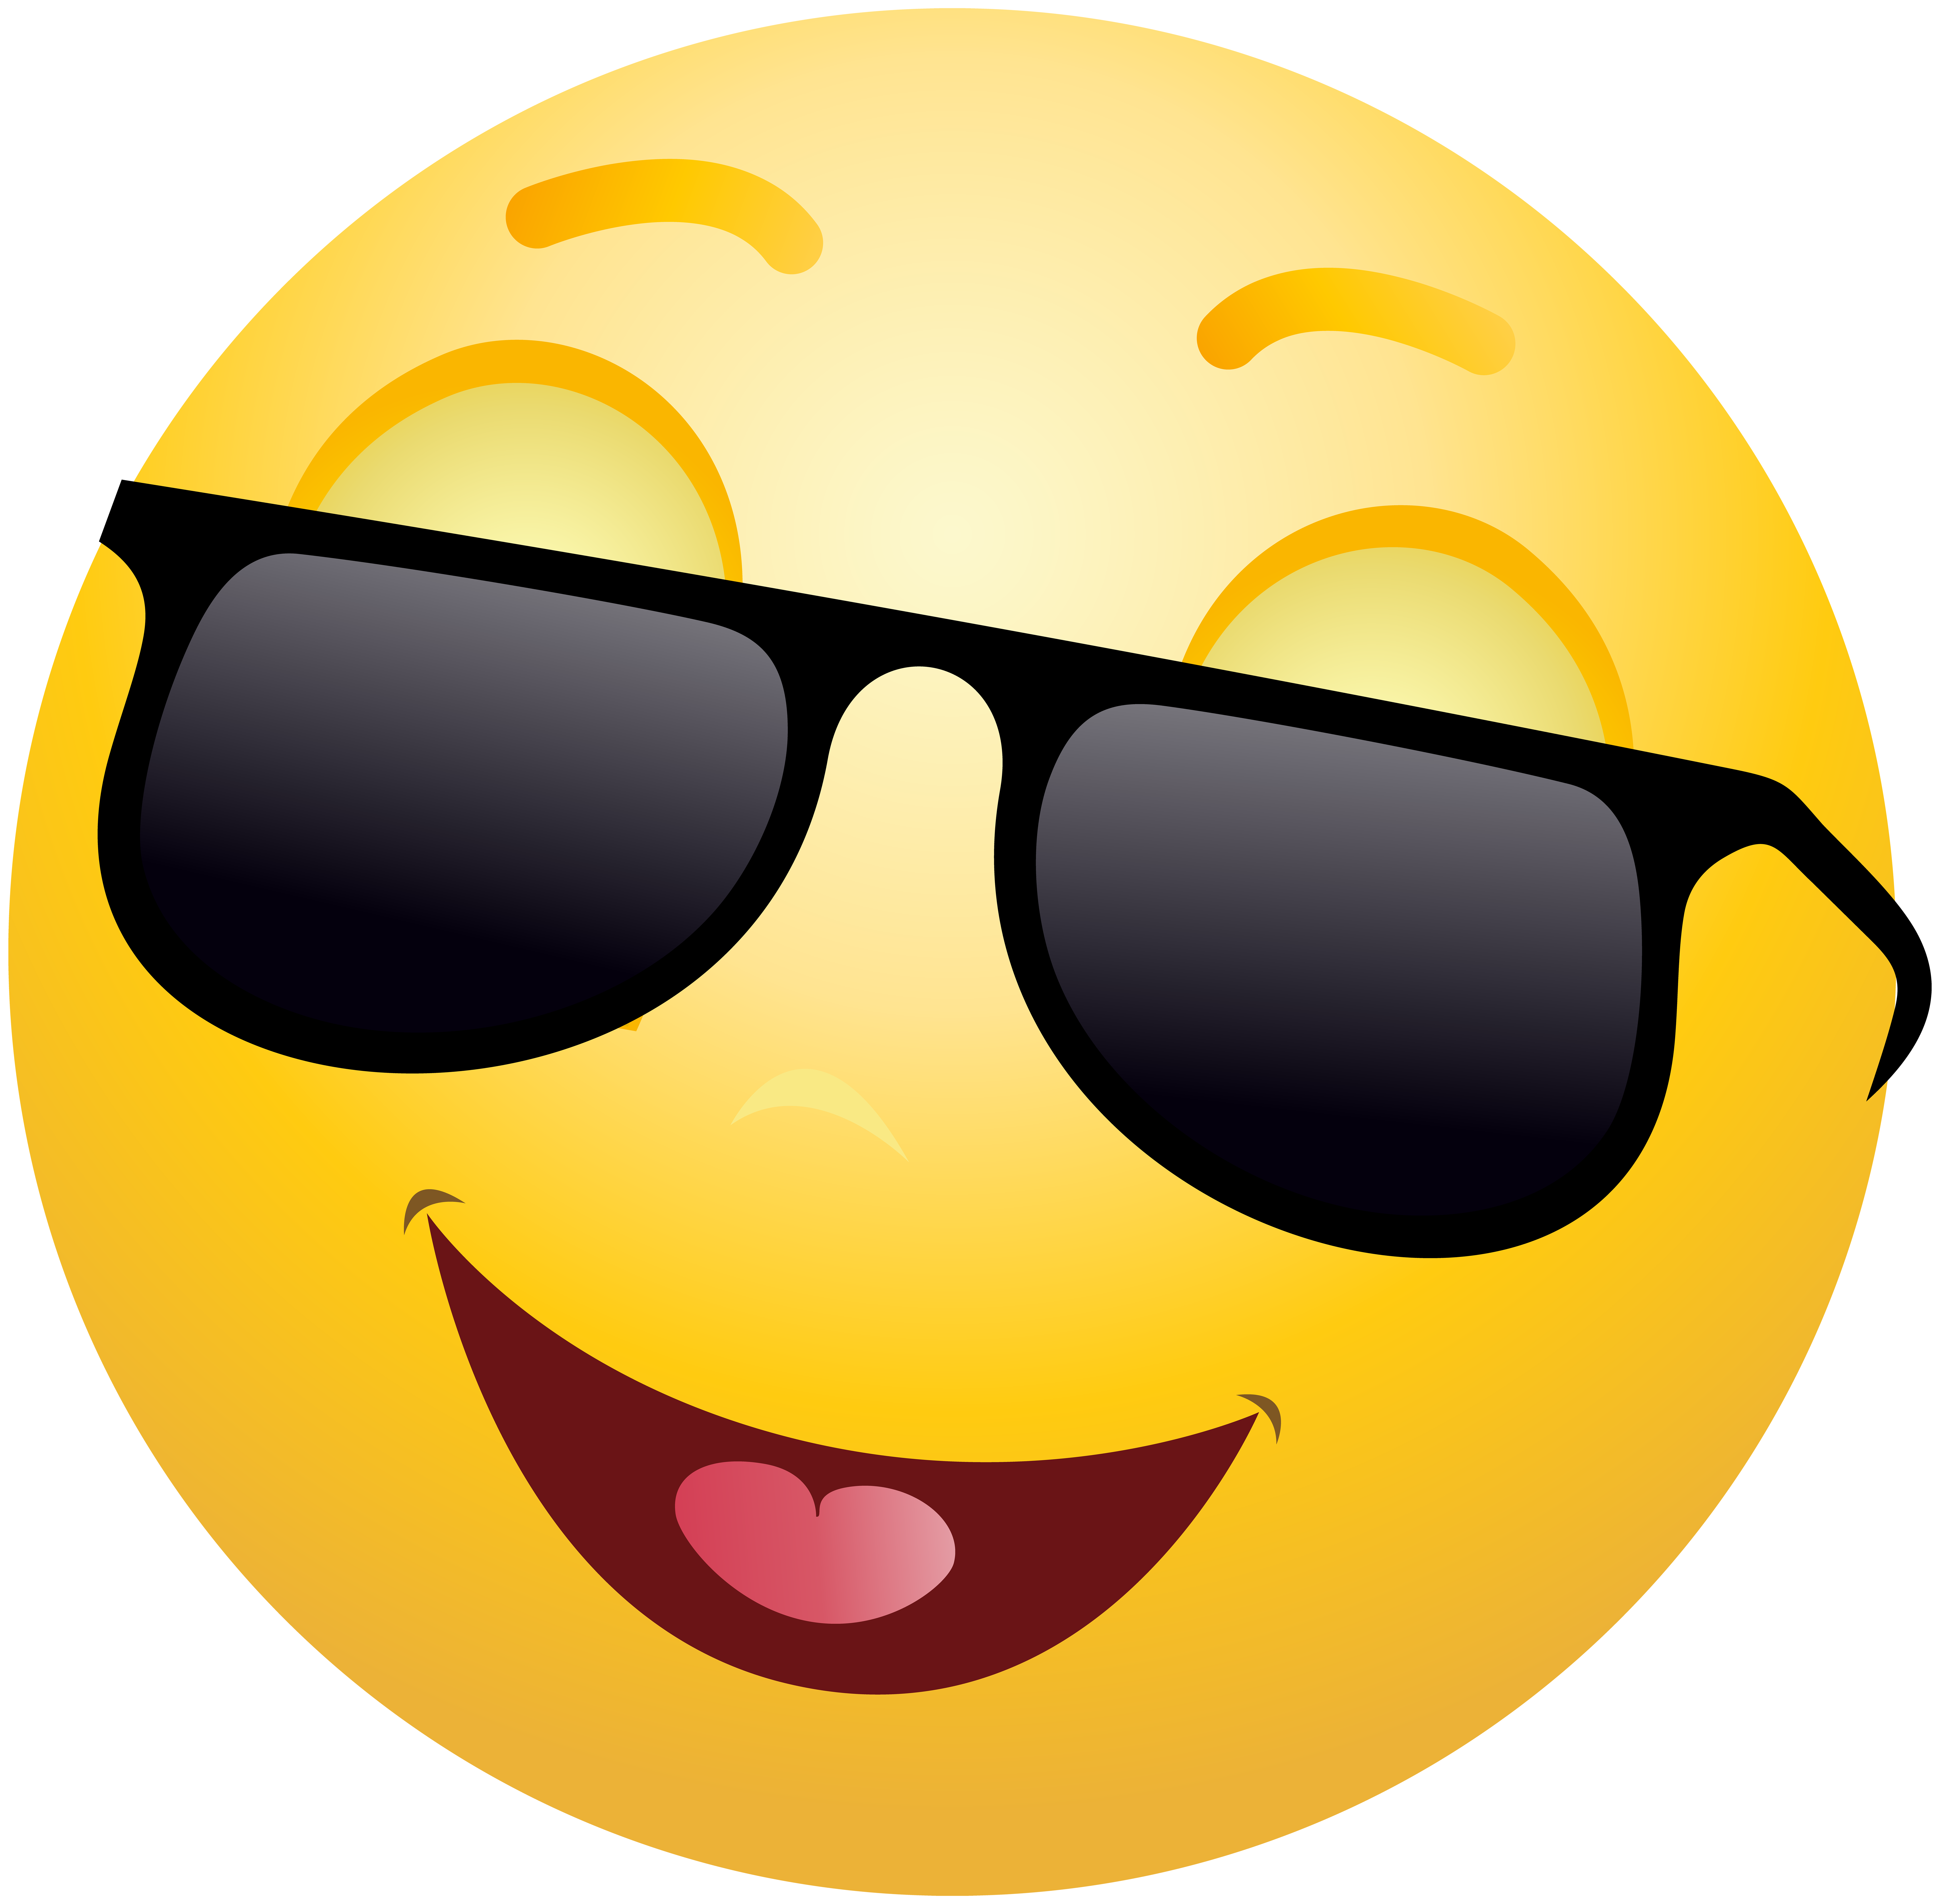 svg royalty free download Smiling clipart smile emoji. Emoticon with sunglasses png